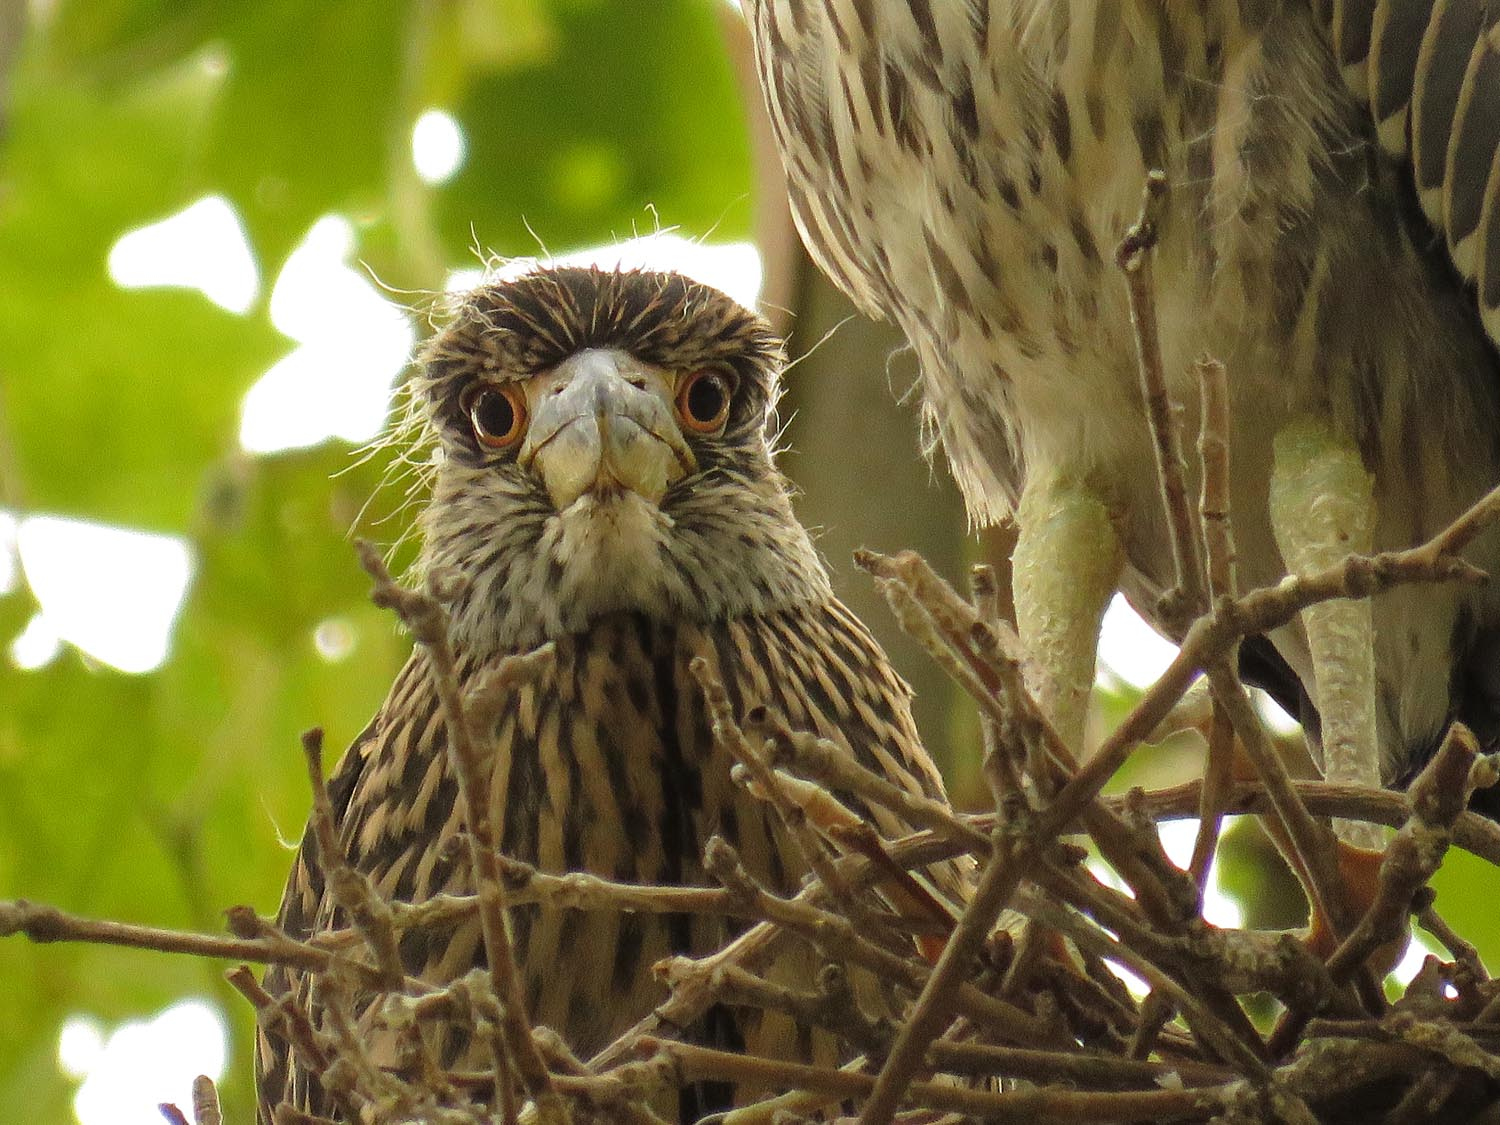 Yellow-crowned night heron youngster, Governors Island, Aug. 6, 2017